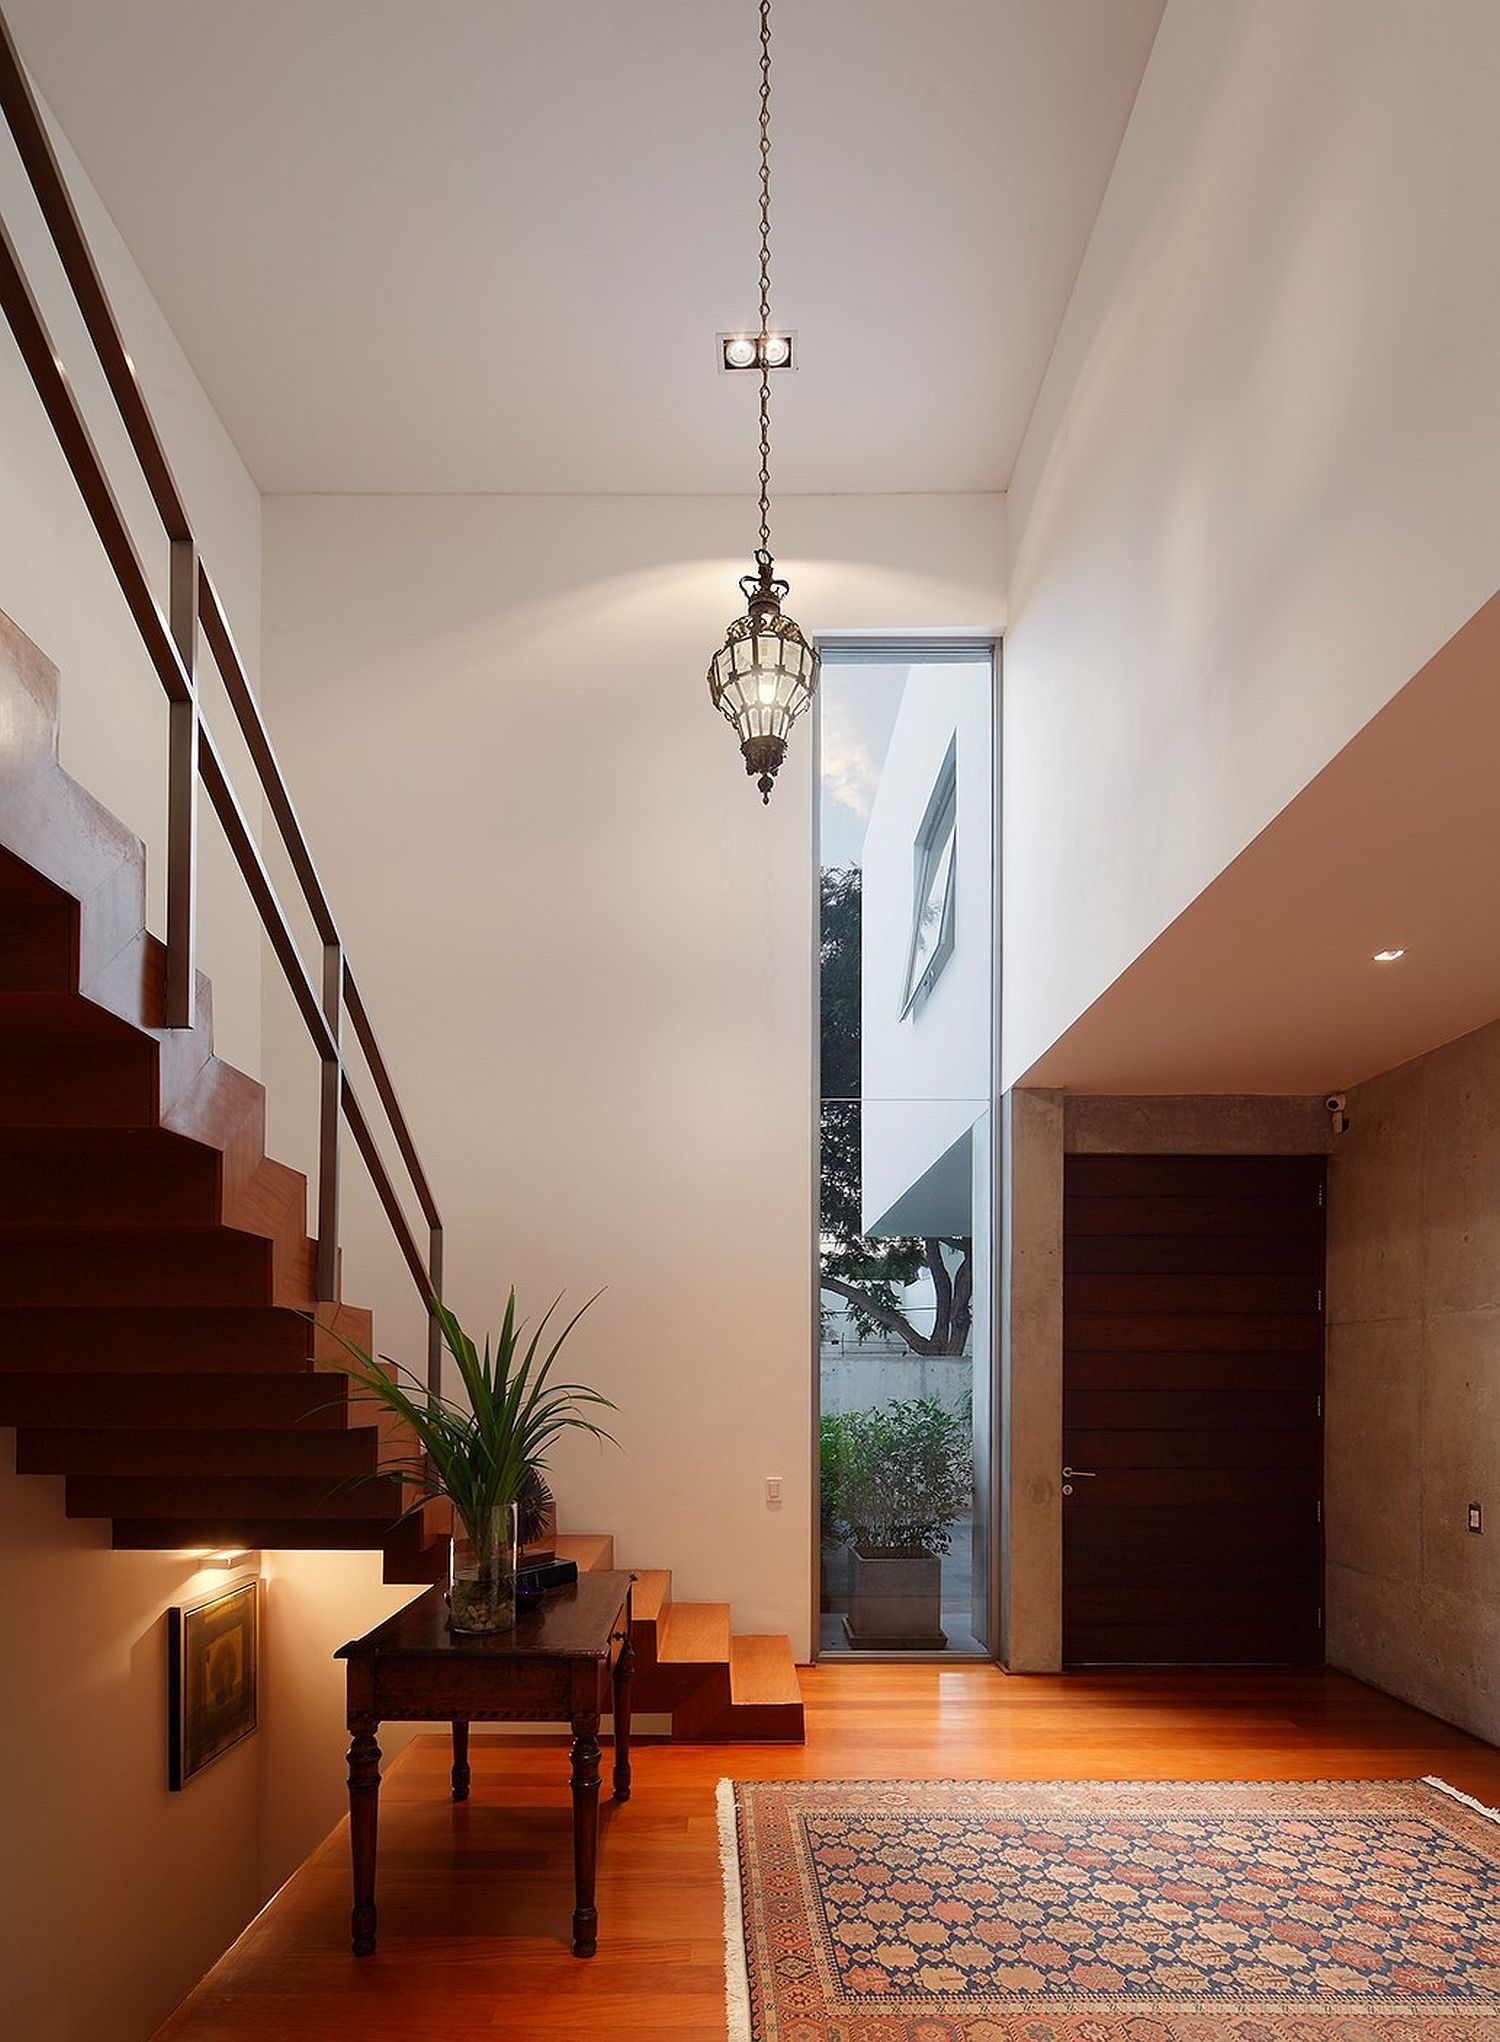 Double height lower level of the house gives the interior an airy vibe